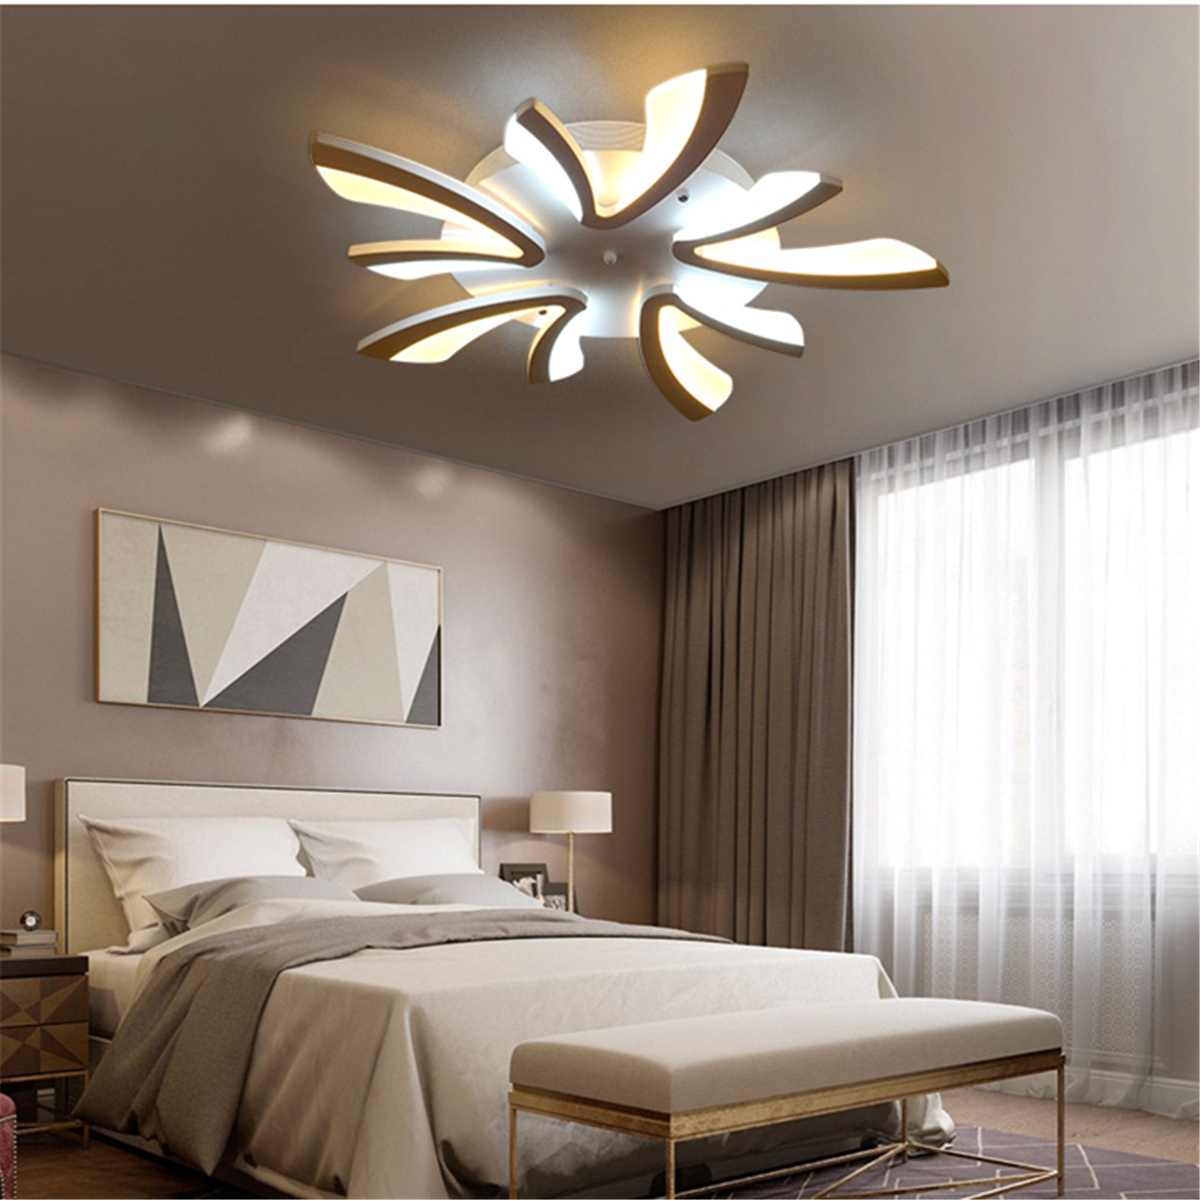 Modern LED Acrylic Ceiling Lamp Delicate Pendant Light Chandeliers Home Living Room Bedroom Dining Bedroom Decor Light FixturesModern LED Acrylic Ceiling Lamp Delicate Pendant Light Chandeliers Home Living Room Bedroom Dining Bedroom Decor Light Fixtures